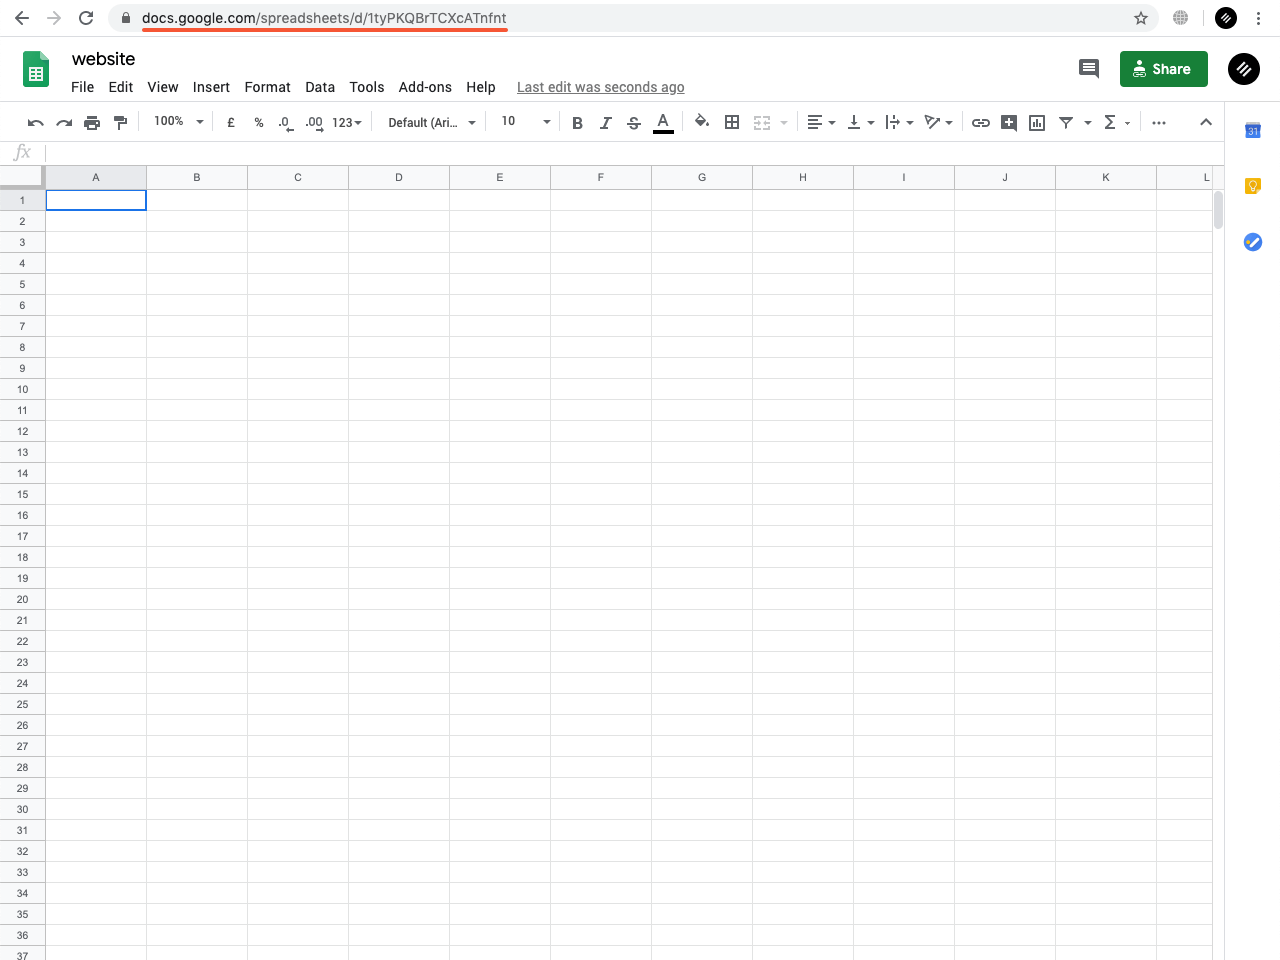 Google Sheets spreadsheet with the highlighted URL